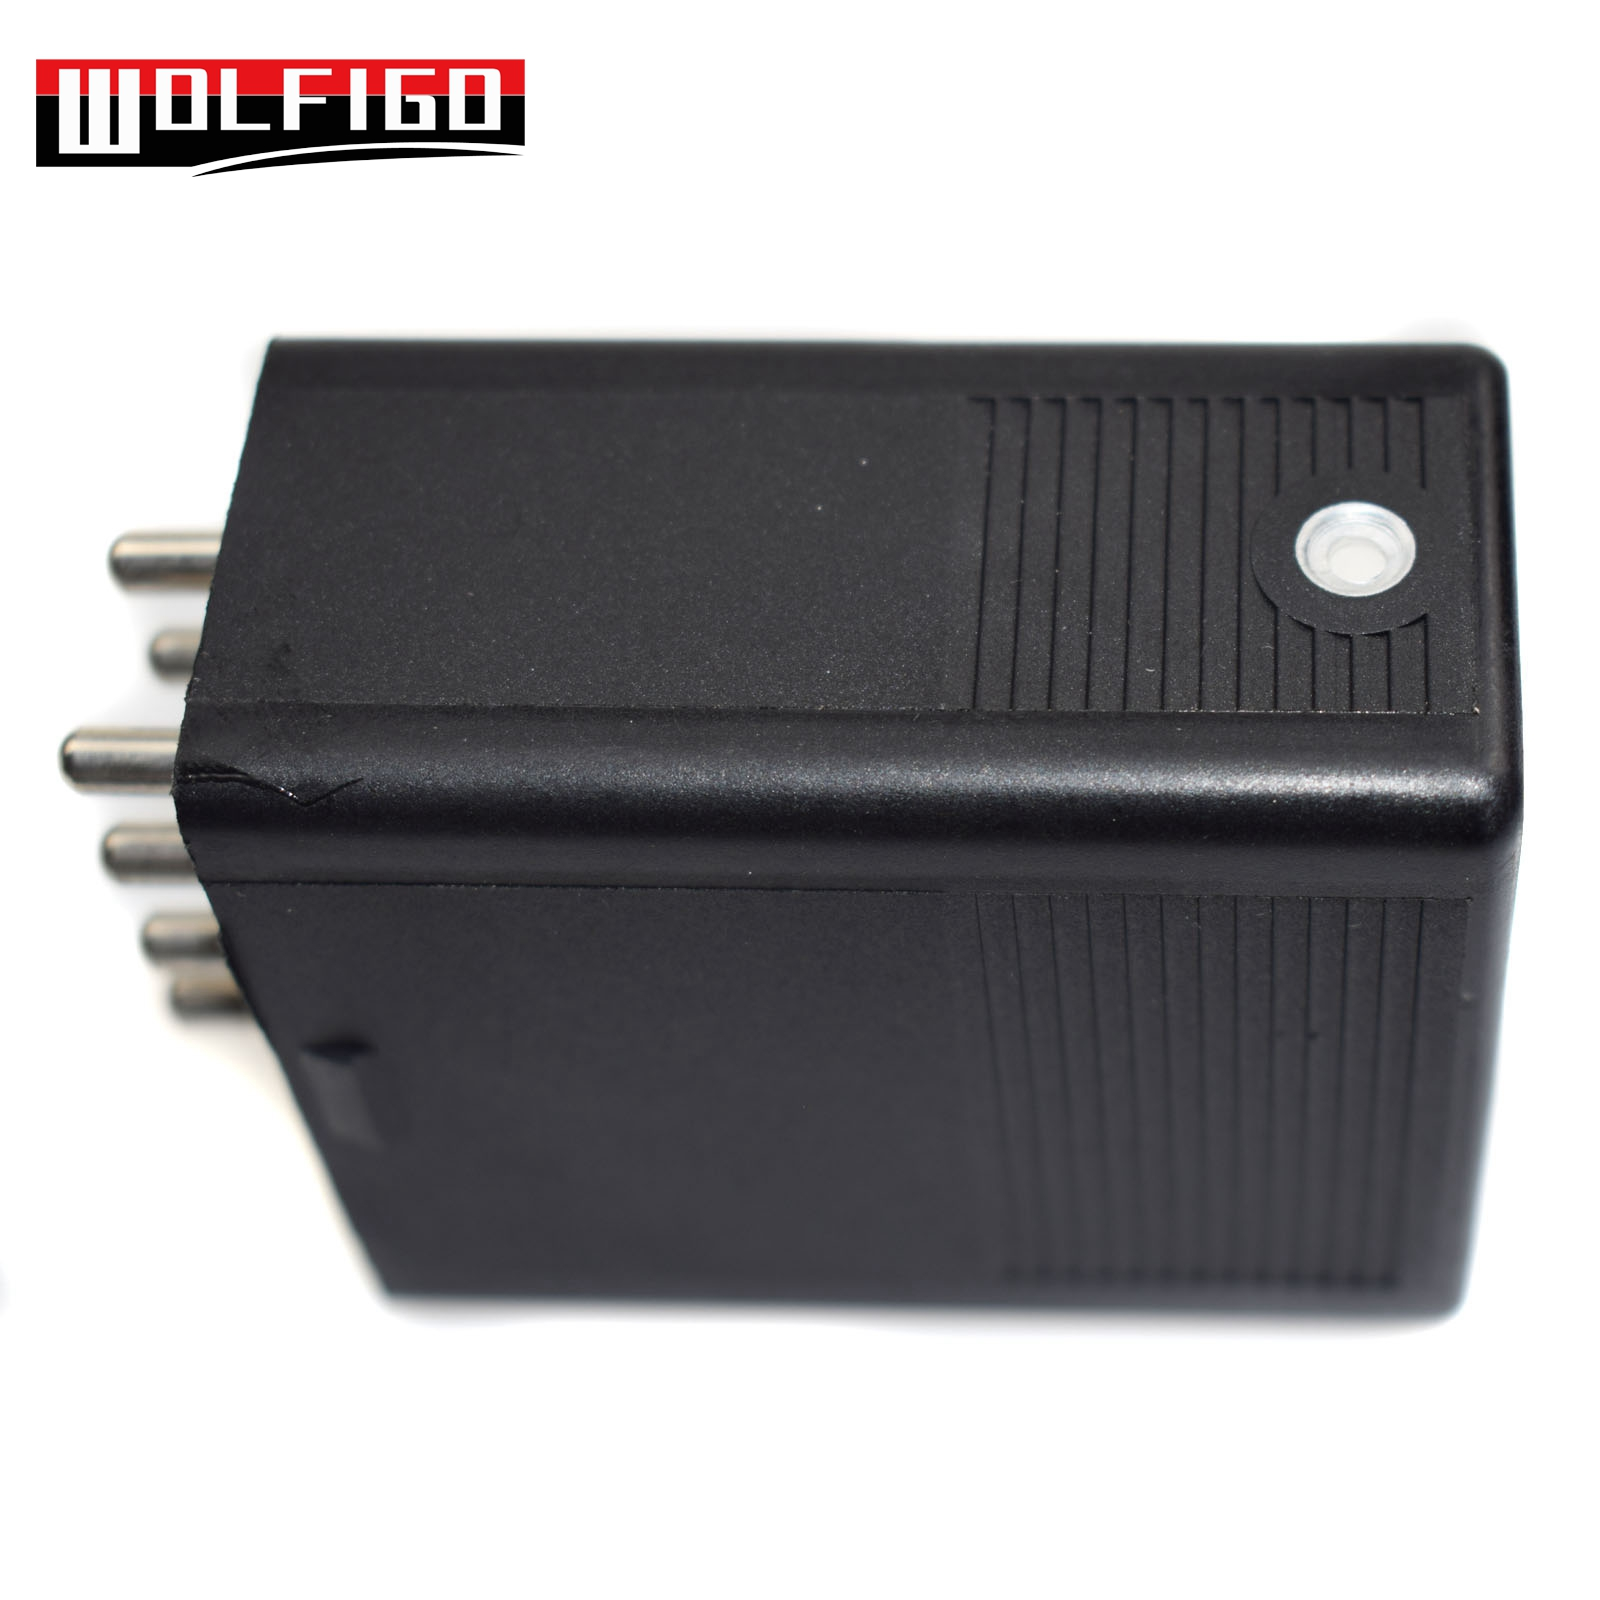 Auto Replacement Parts Car Switches & Relays 2019 New Style Smd Fuel Pump Relay For Mercedesbenz 190e 300d W124 W126 W201 Oem 003 545 24 05 0035452405